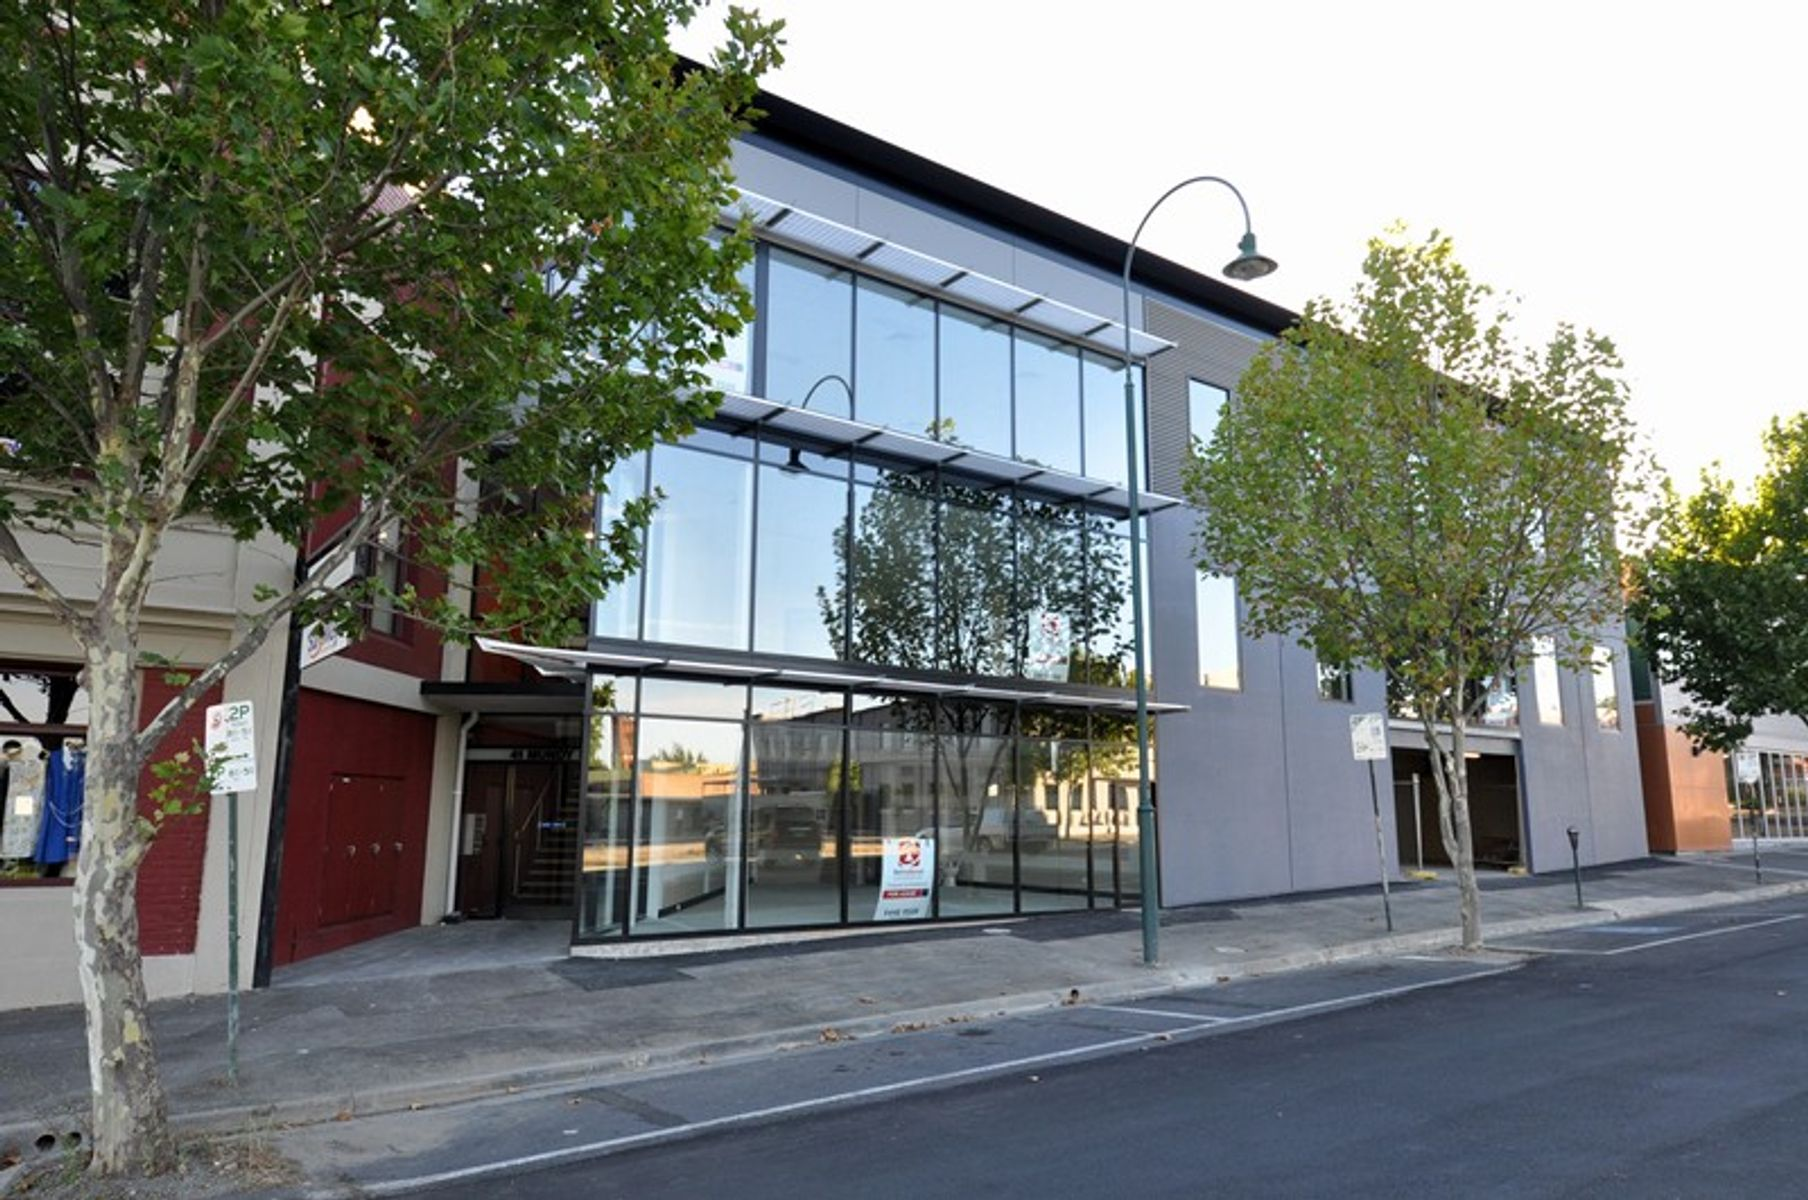 Unit 2/41-43 Mundy Street, Bendigo, VIC 3550